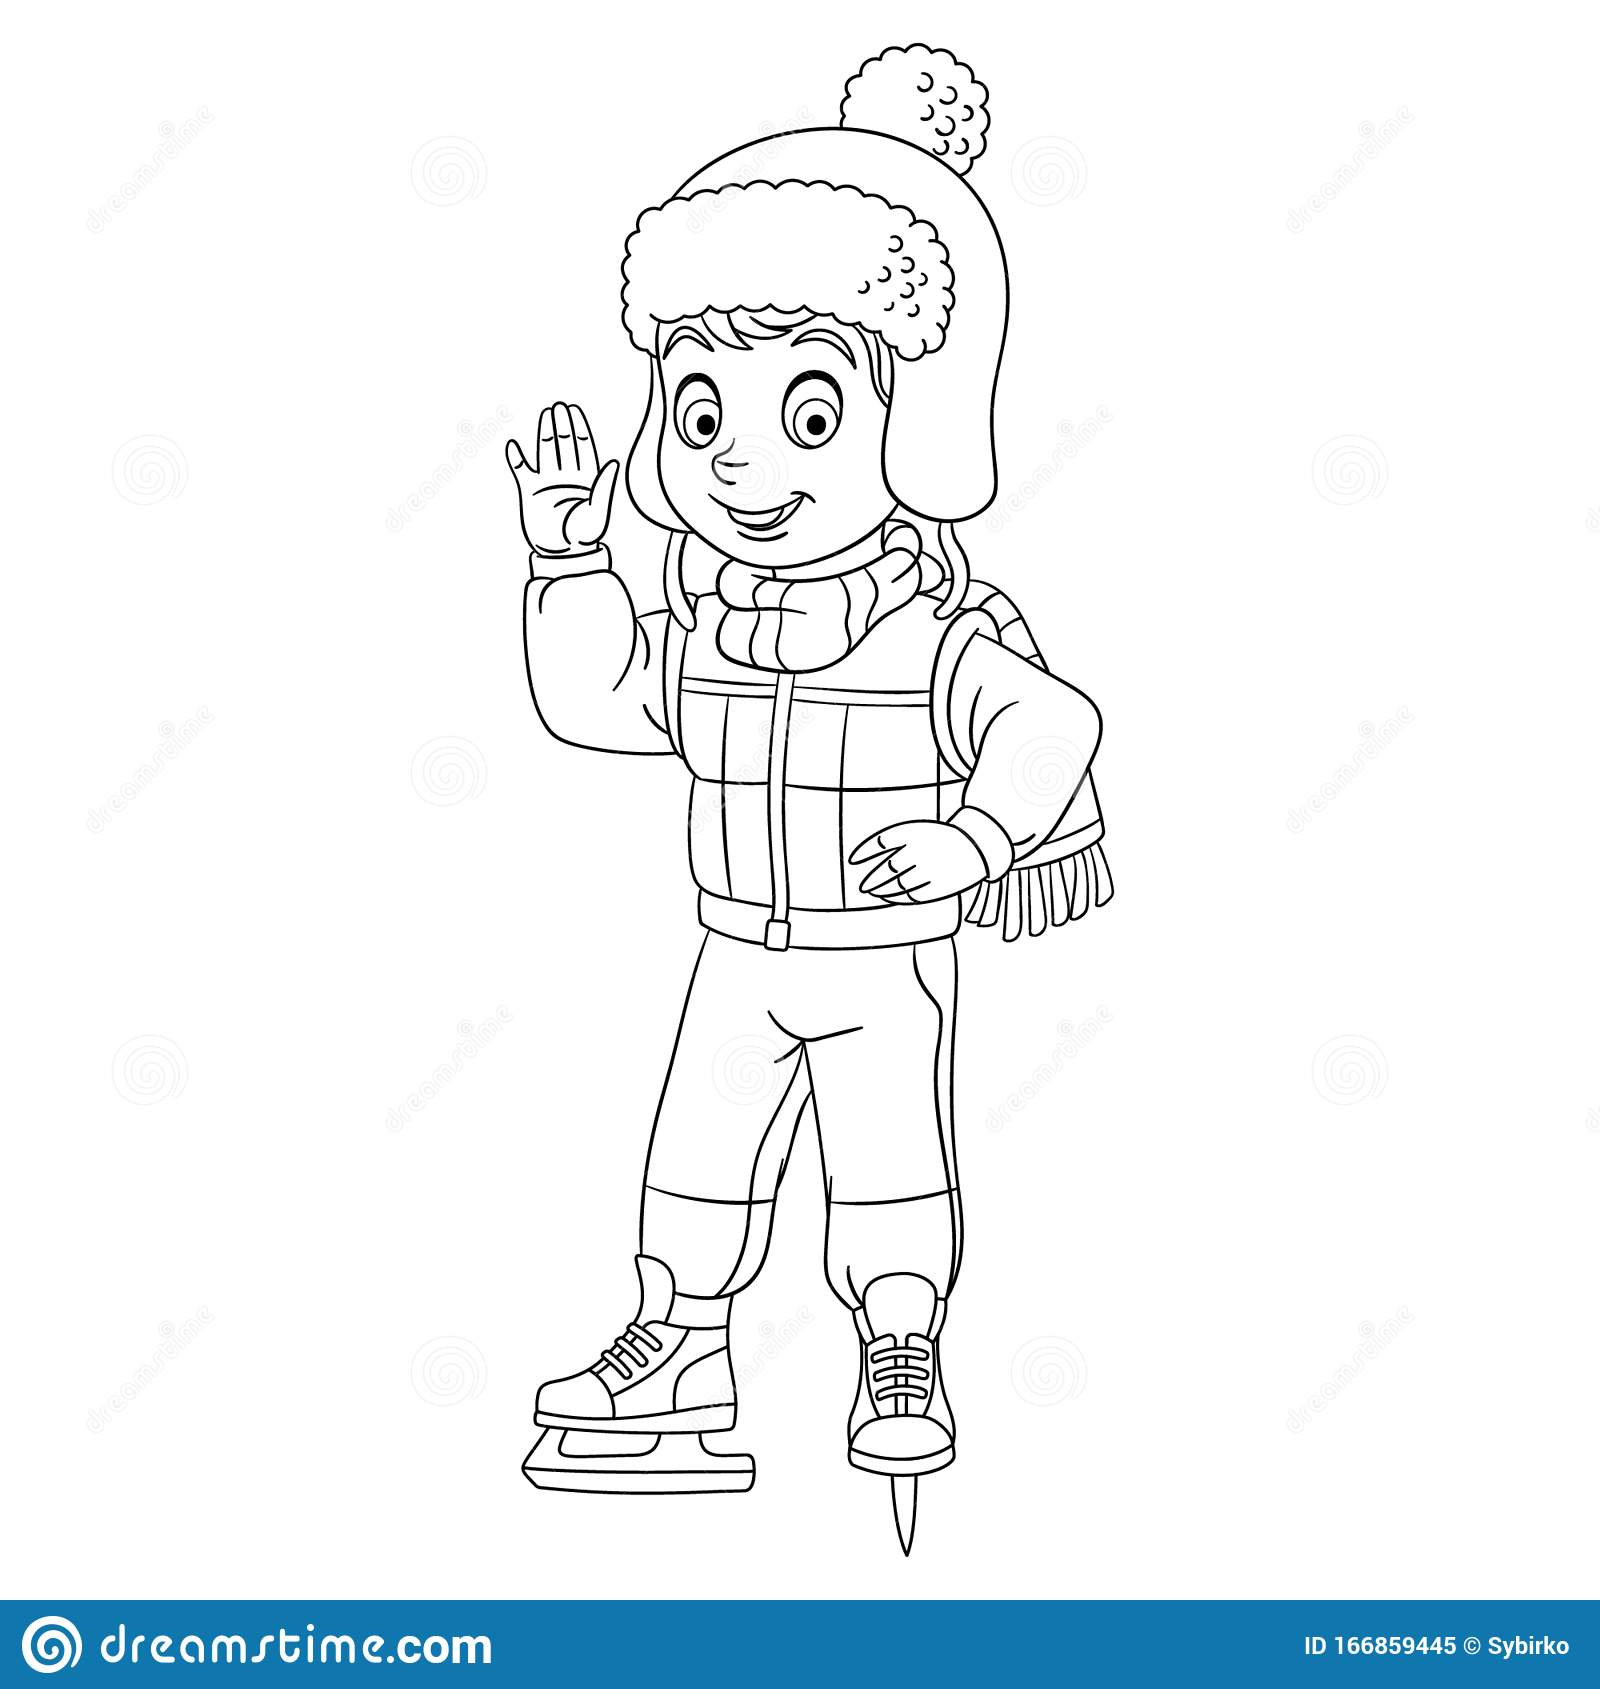 Coloring Page With Happy Boy Skating Stock Vector ...